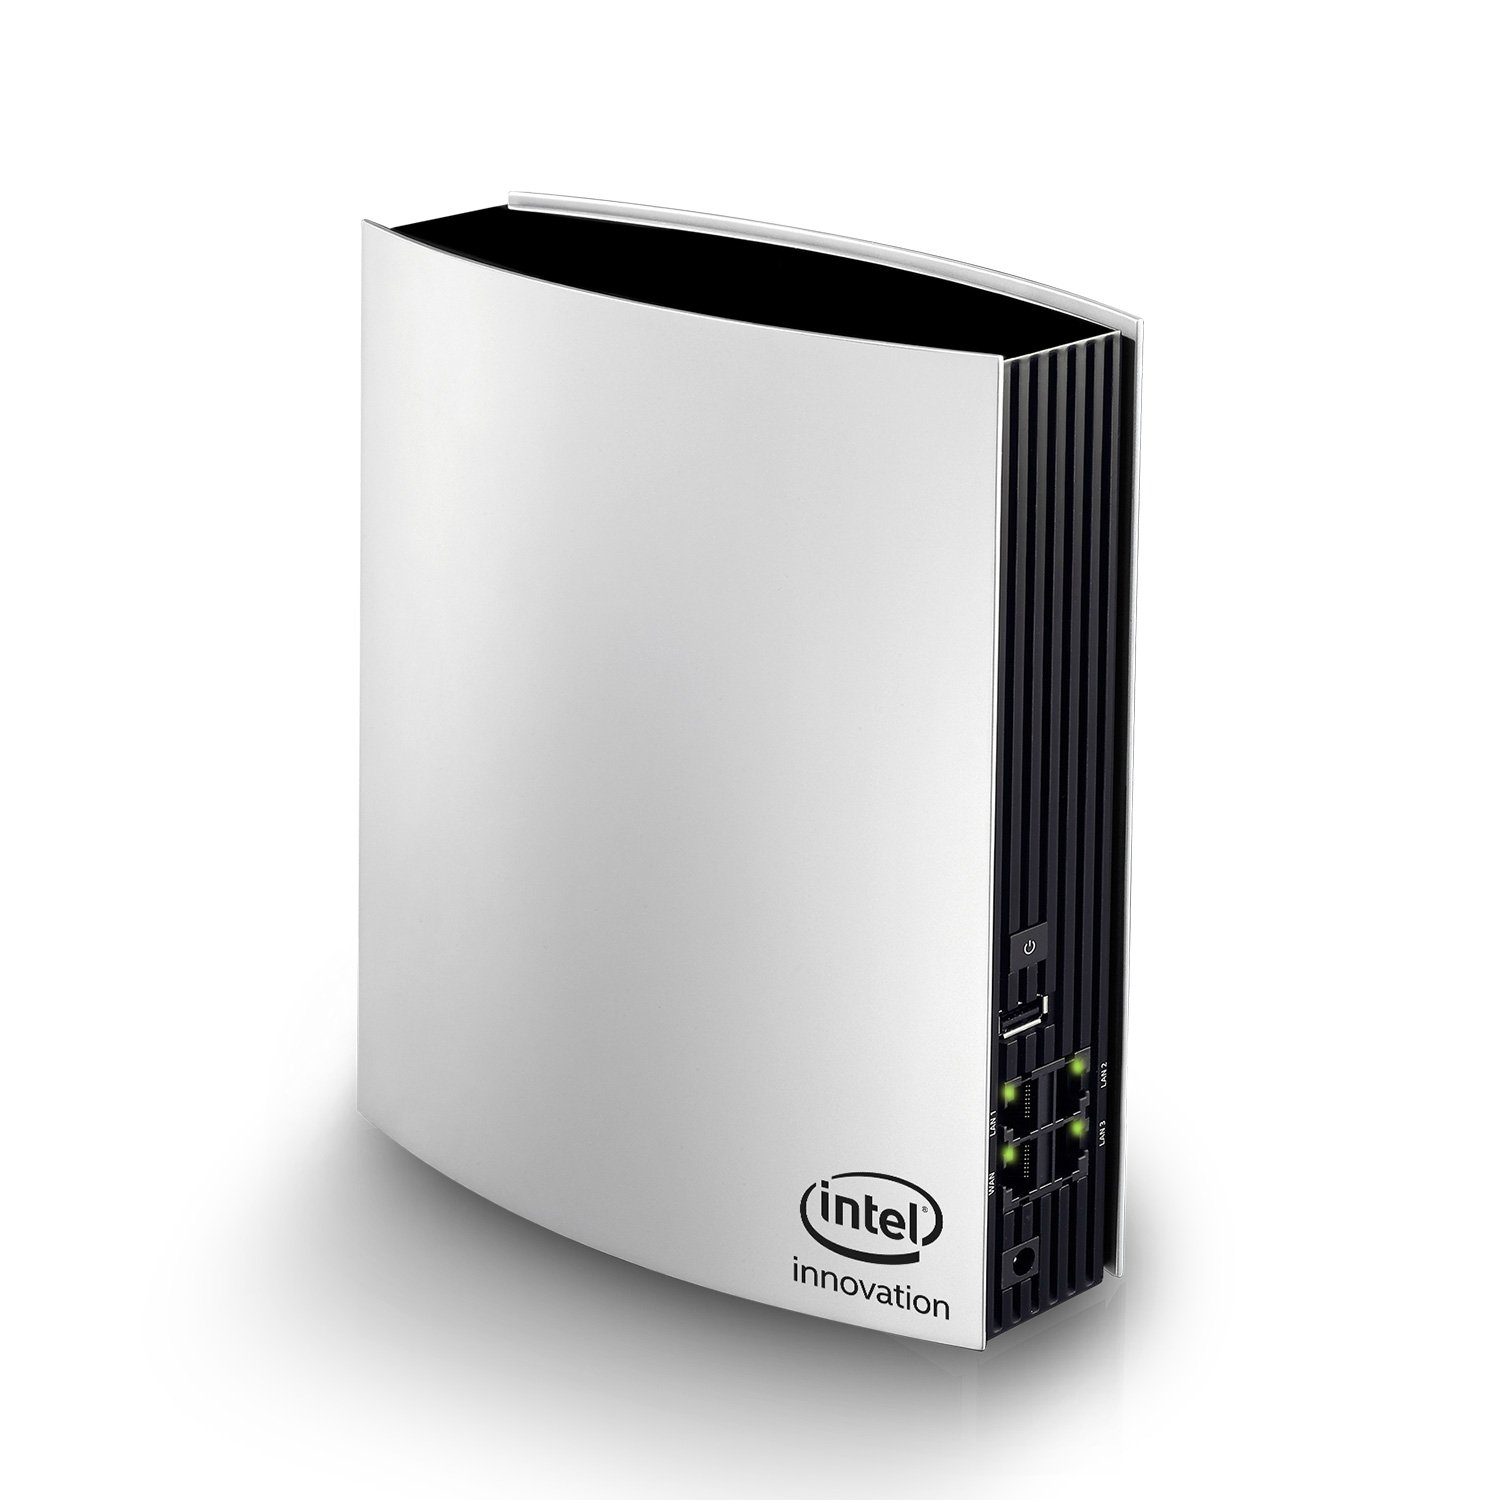 PHICOMM K3C AC 1900 MU-MIMO Dual Band Wi-Fi Gigabit Router - Powered by Intel Technology by PHICOMM®